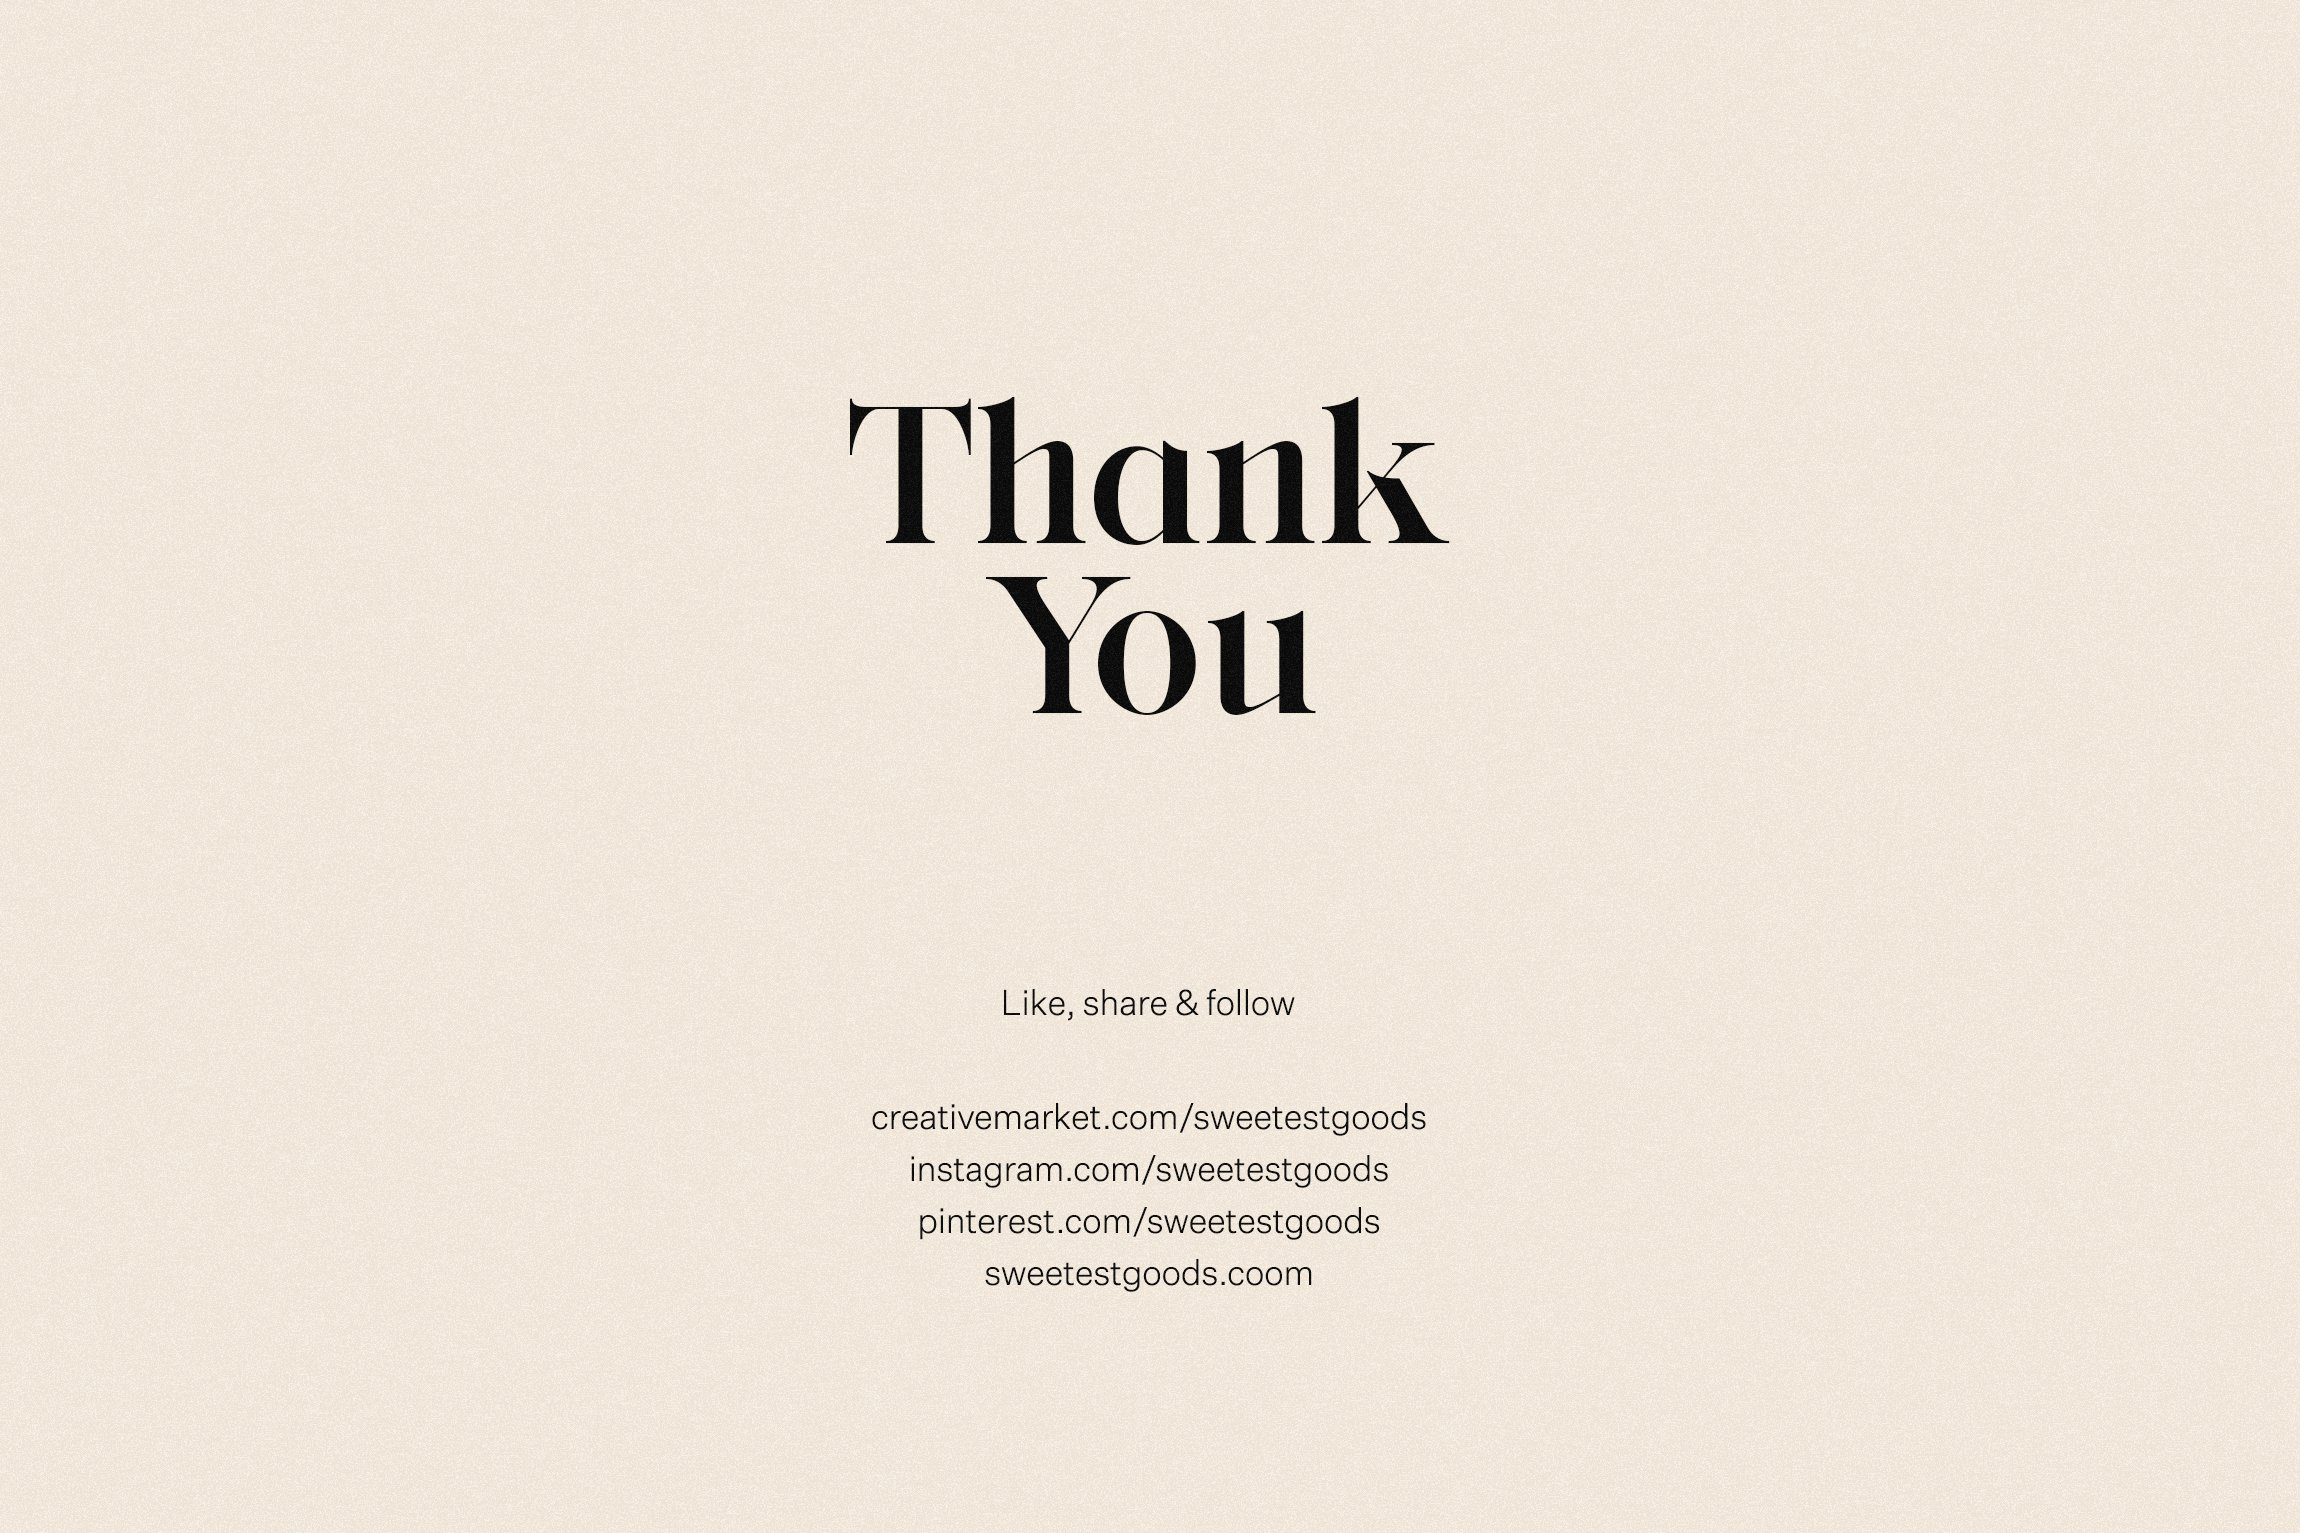 vultura font free logos sweetest goods thank you 16